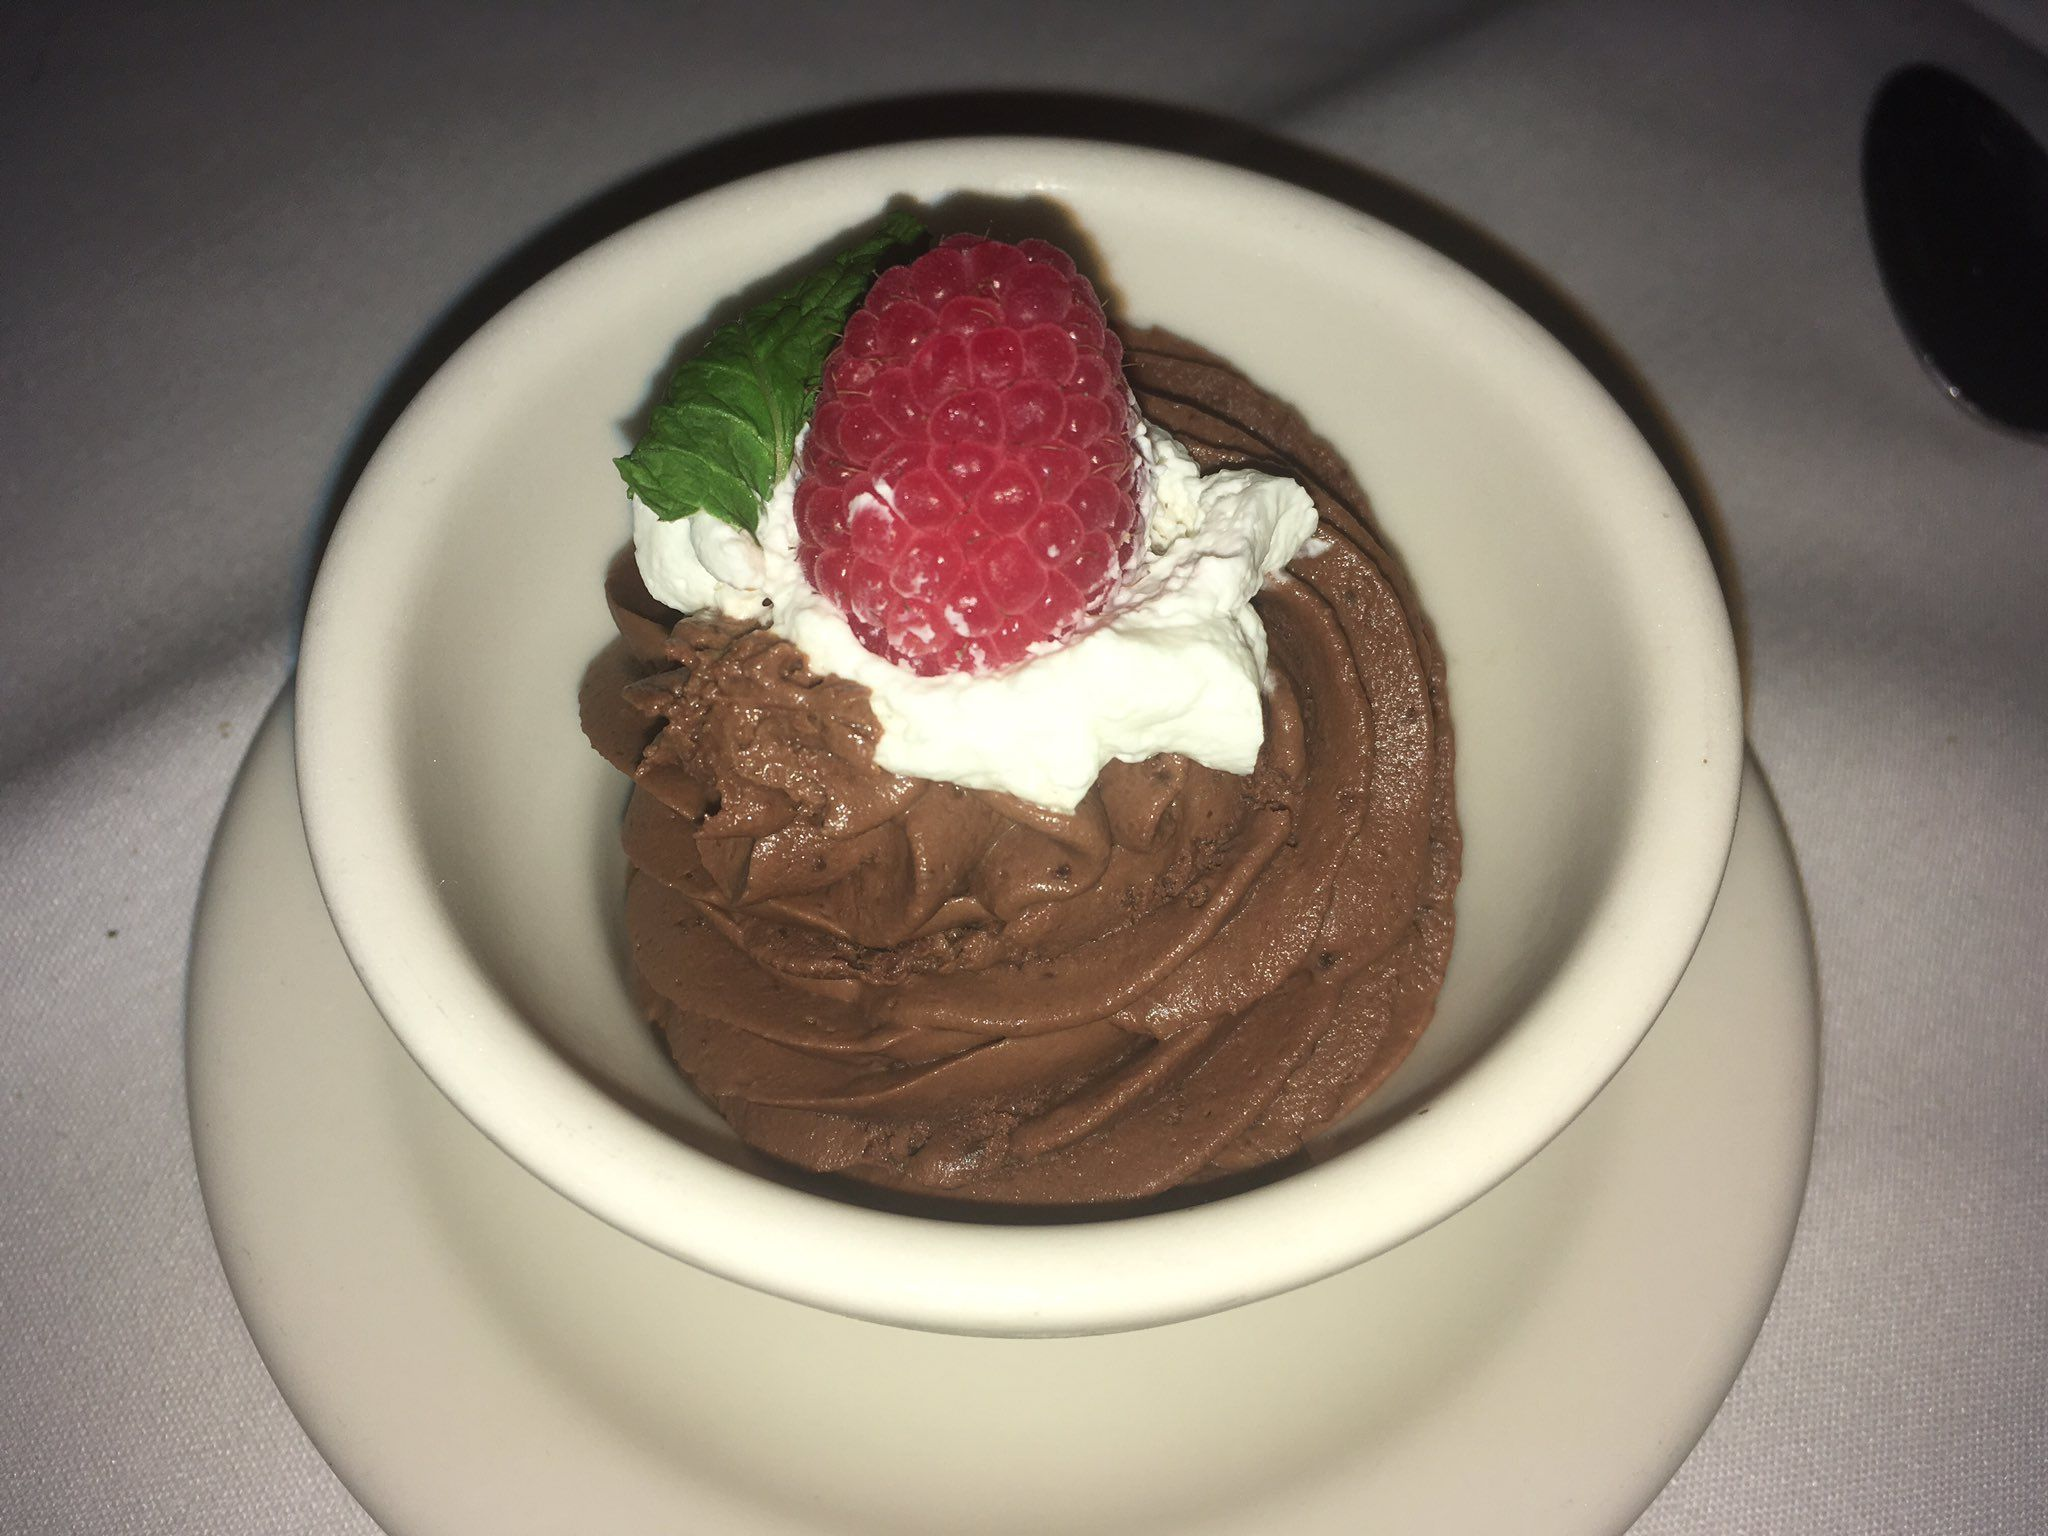 And we are topping off dinner @Mortons with some Chocolate Mousse! @VisitOrlando #MagicalDining https://t.co/Ftb8NzWPV6